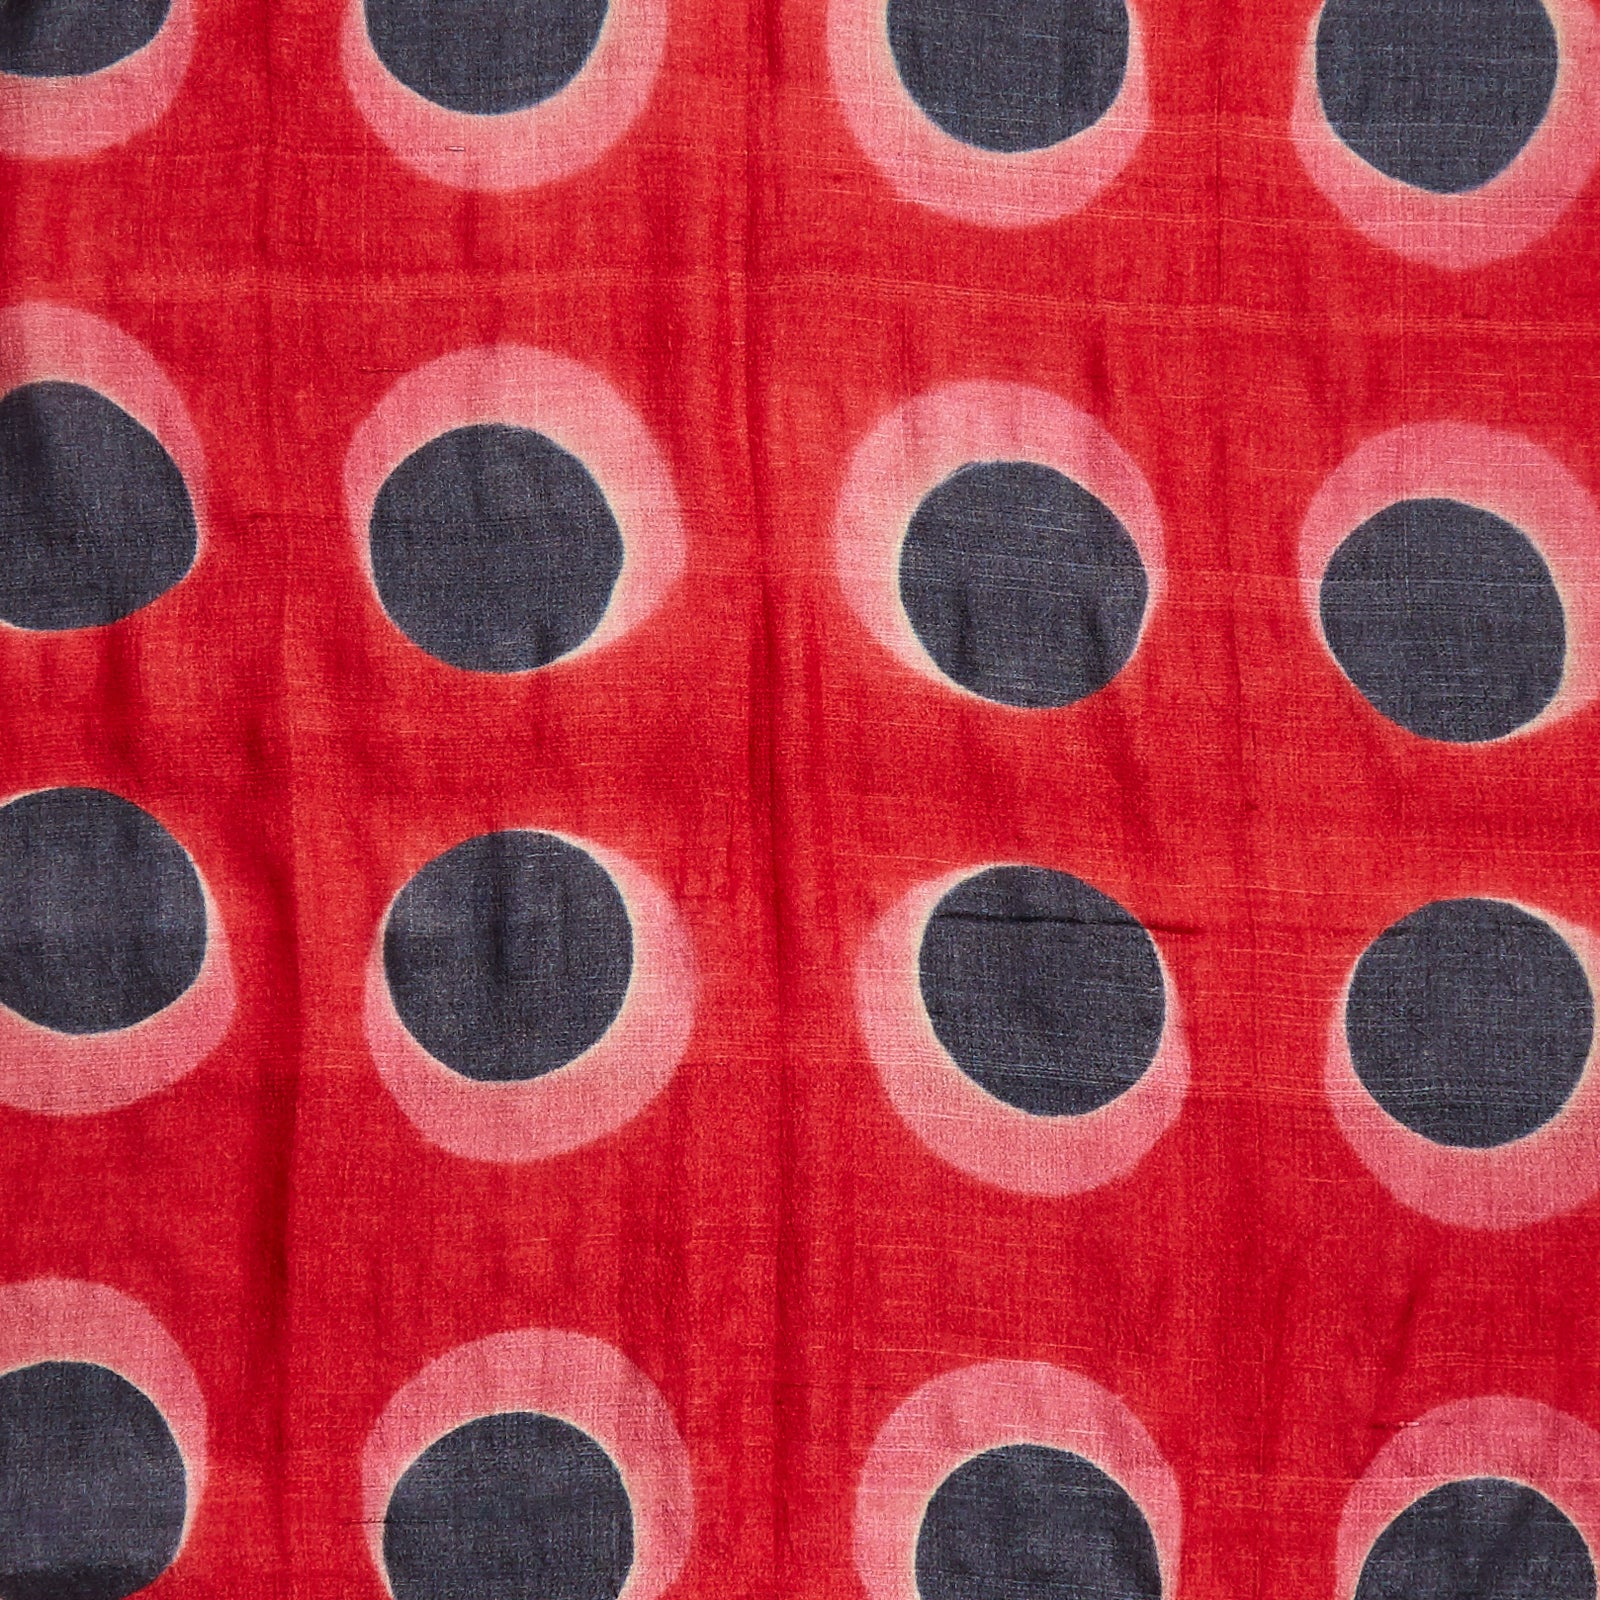 Image showing off the striking red pattern